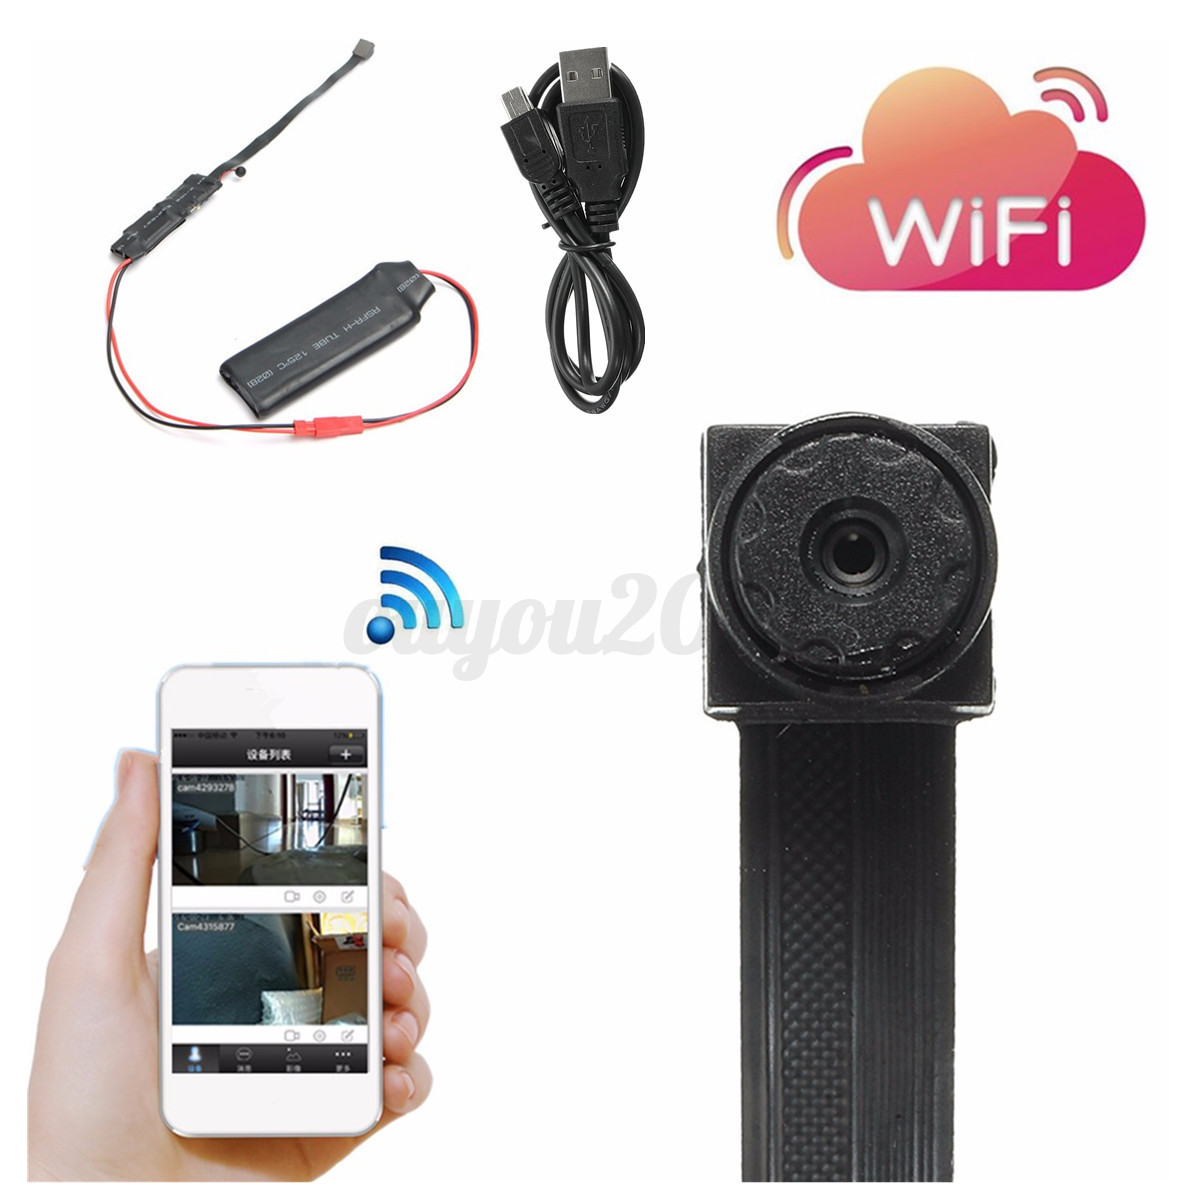 CCTV-IP-WLAN-WIFI-VERSTECKTE-KAMERA-MINI-SPYCAM-VIDEO-UBERWACHUNGSKAMERA-DVR